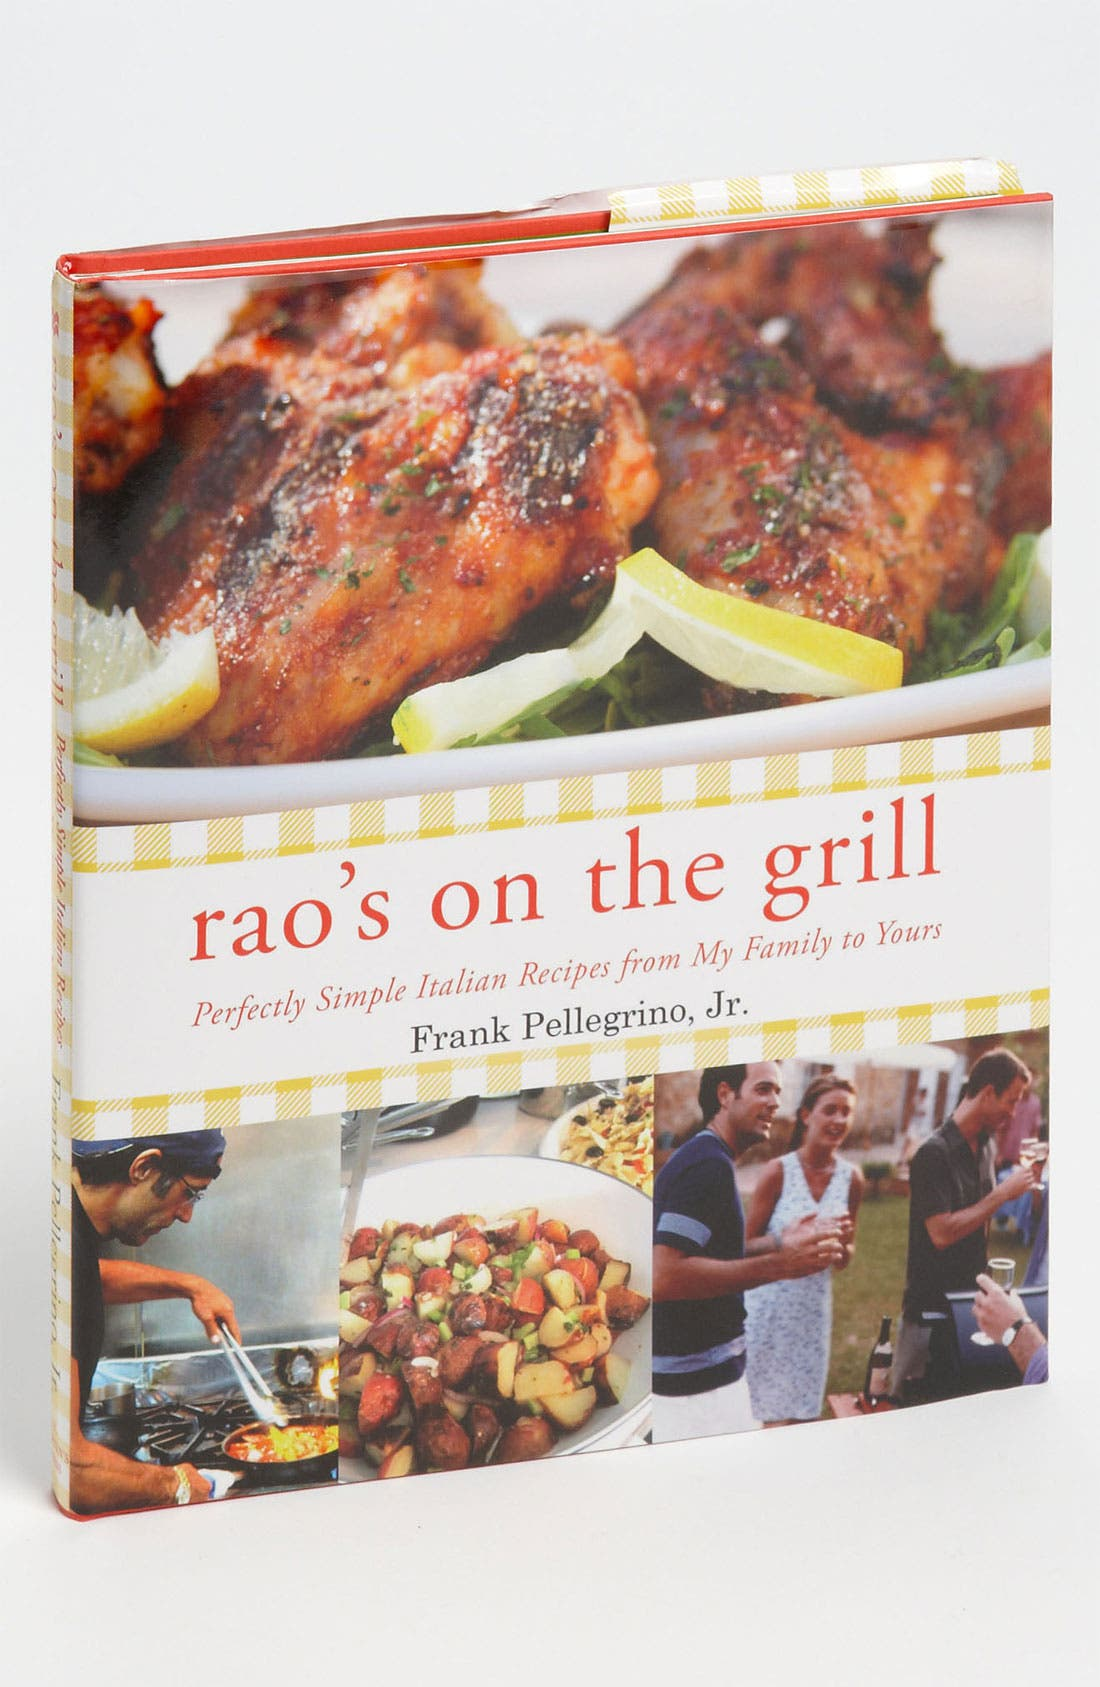 Alternate Image 1 Selected - 'Rao's on the Grill' Cookbook